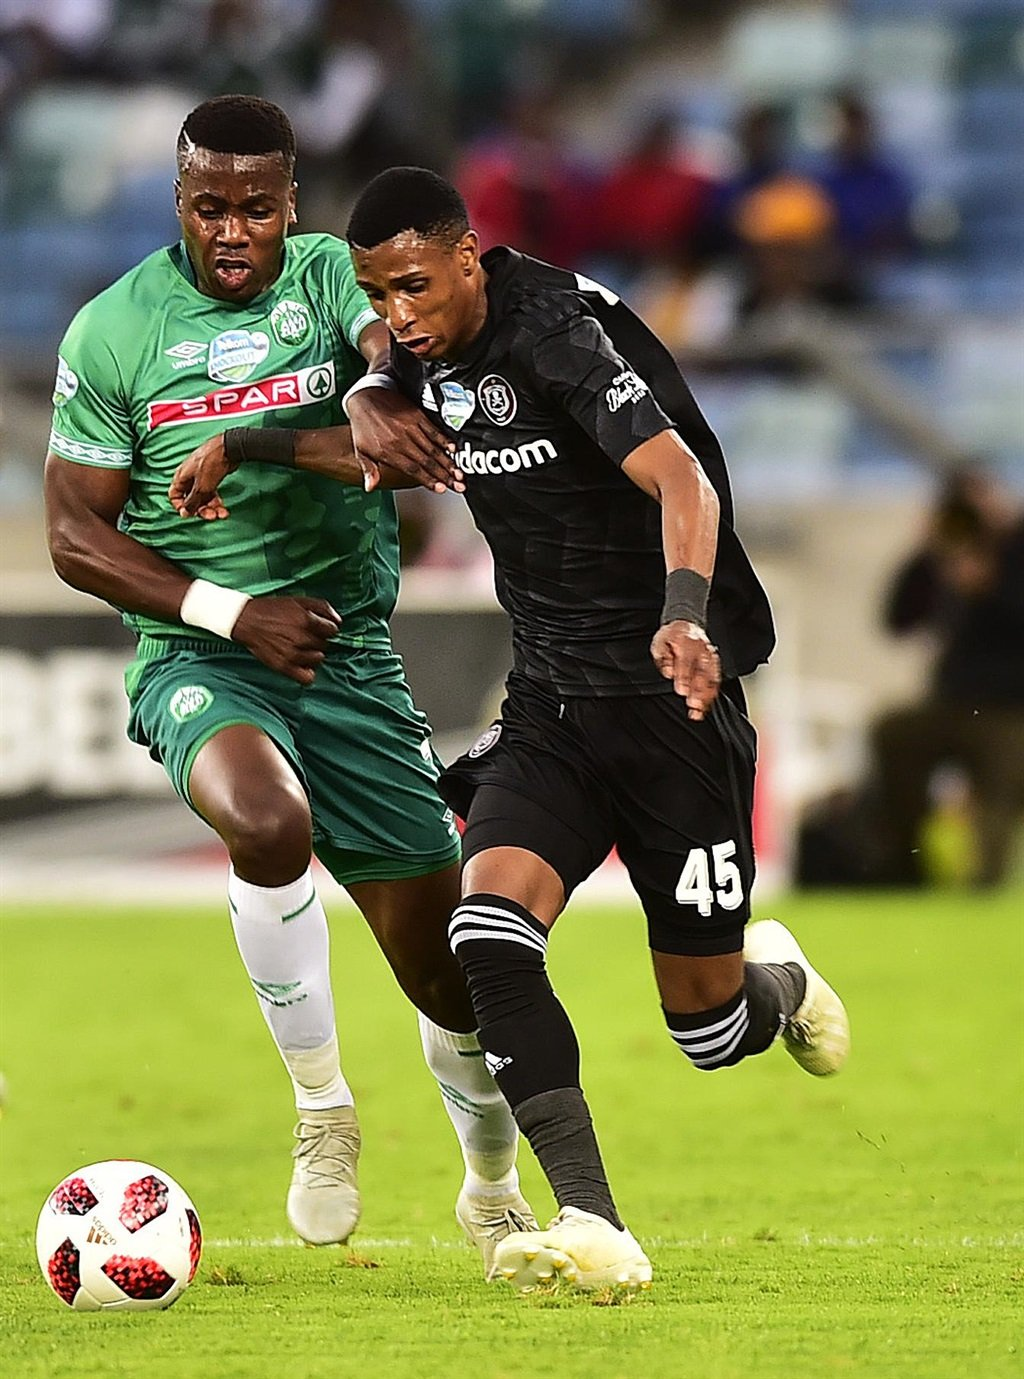 Bonginkosi Ntuli of AmaZulu fights for the ball with Orlando Pirates' Vincent Pule in a Telkom Knockout match at Moses Mabhida Stadium